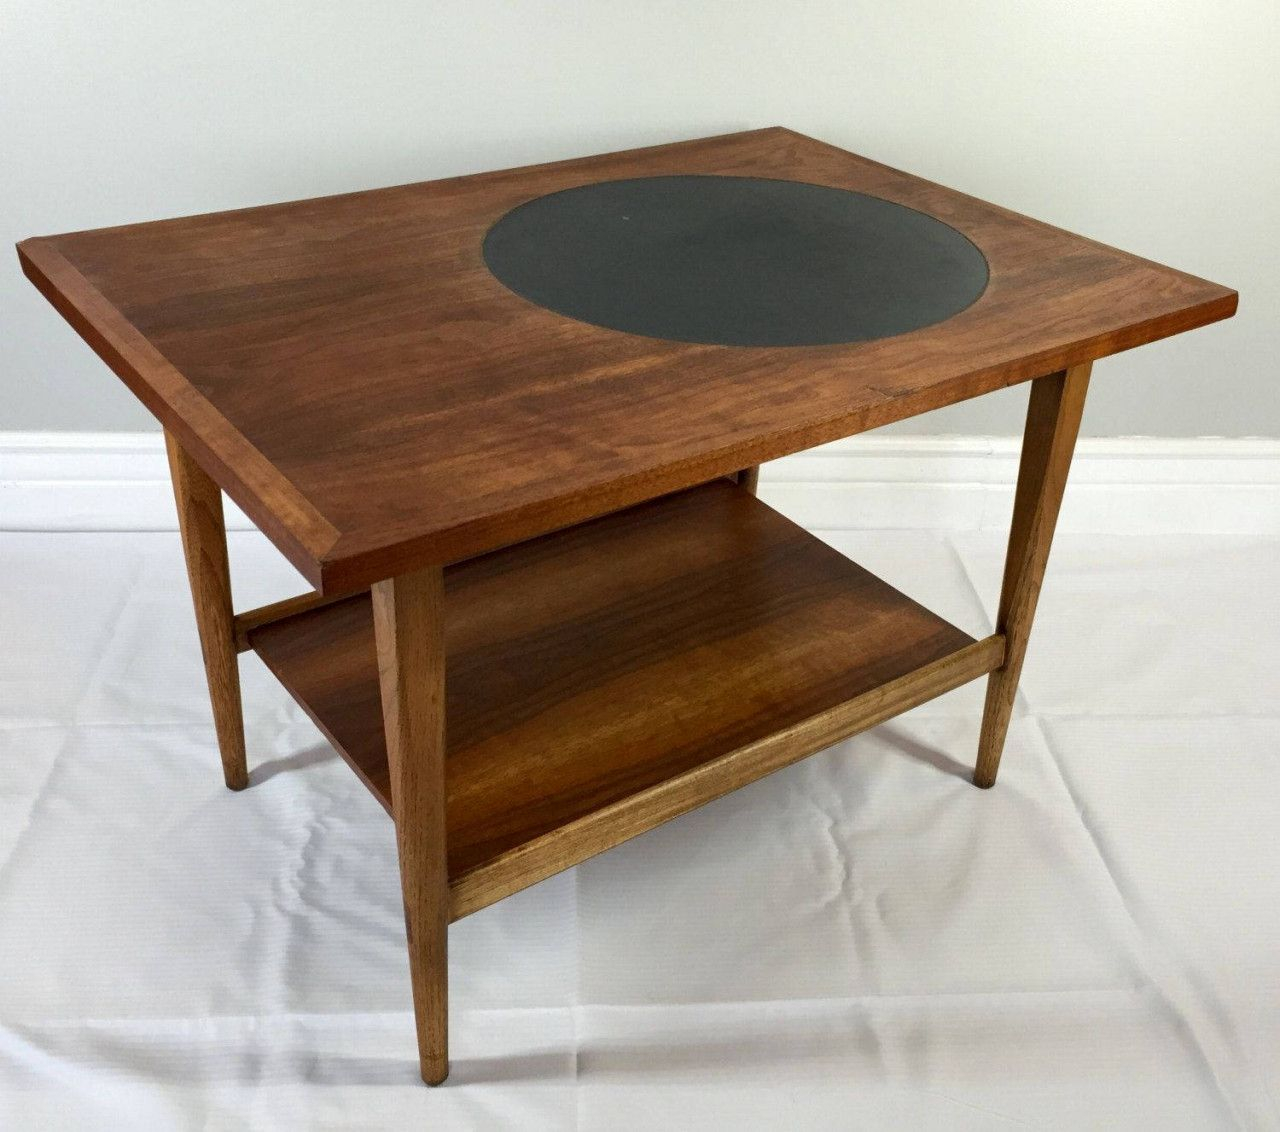 55 Fresh Bungalow 5 Harlow Coffee Table 2018 Desk Office Design In for sizing 1280 X 1132